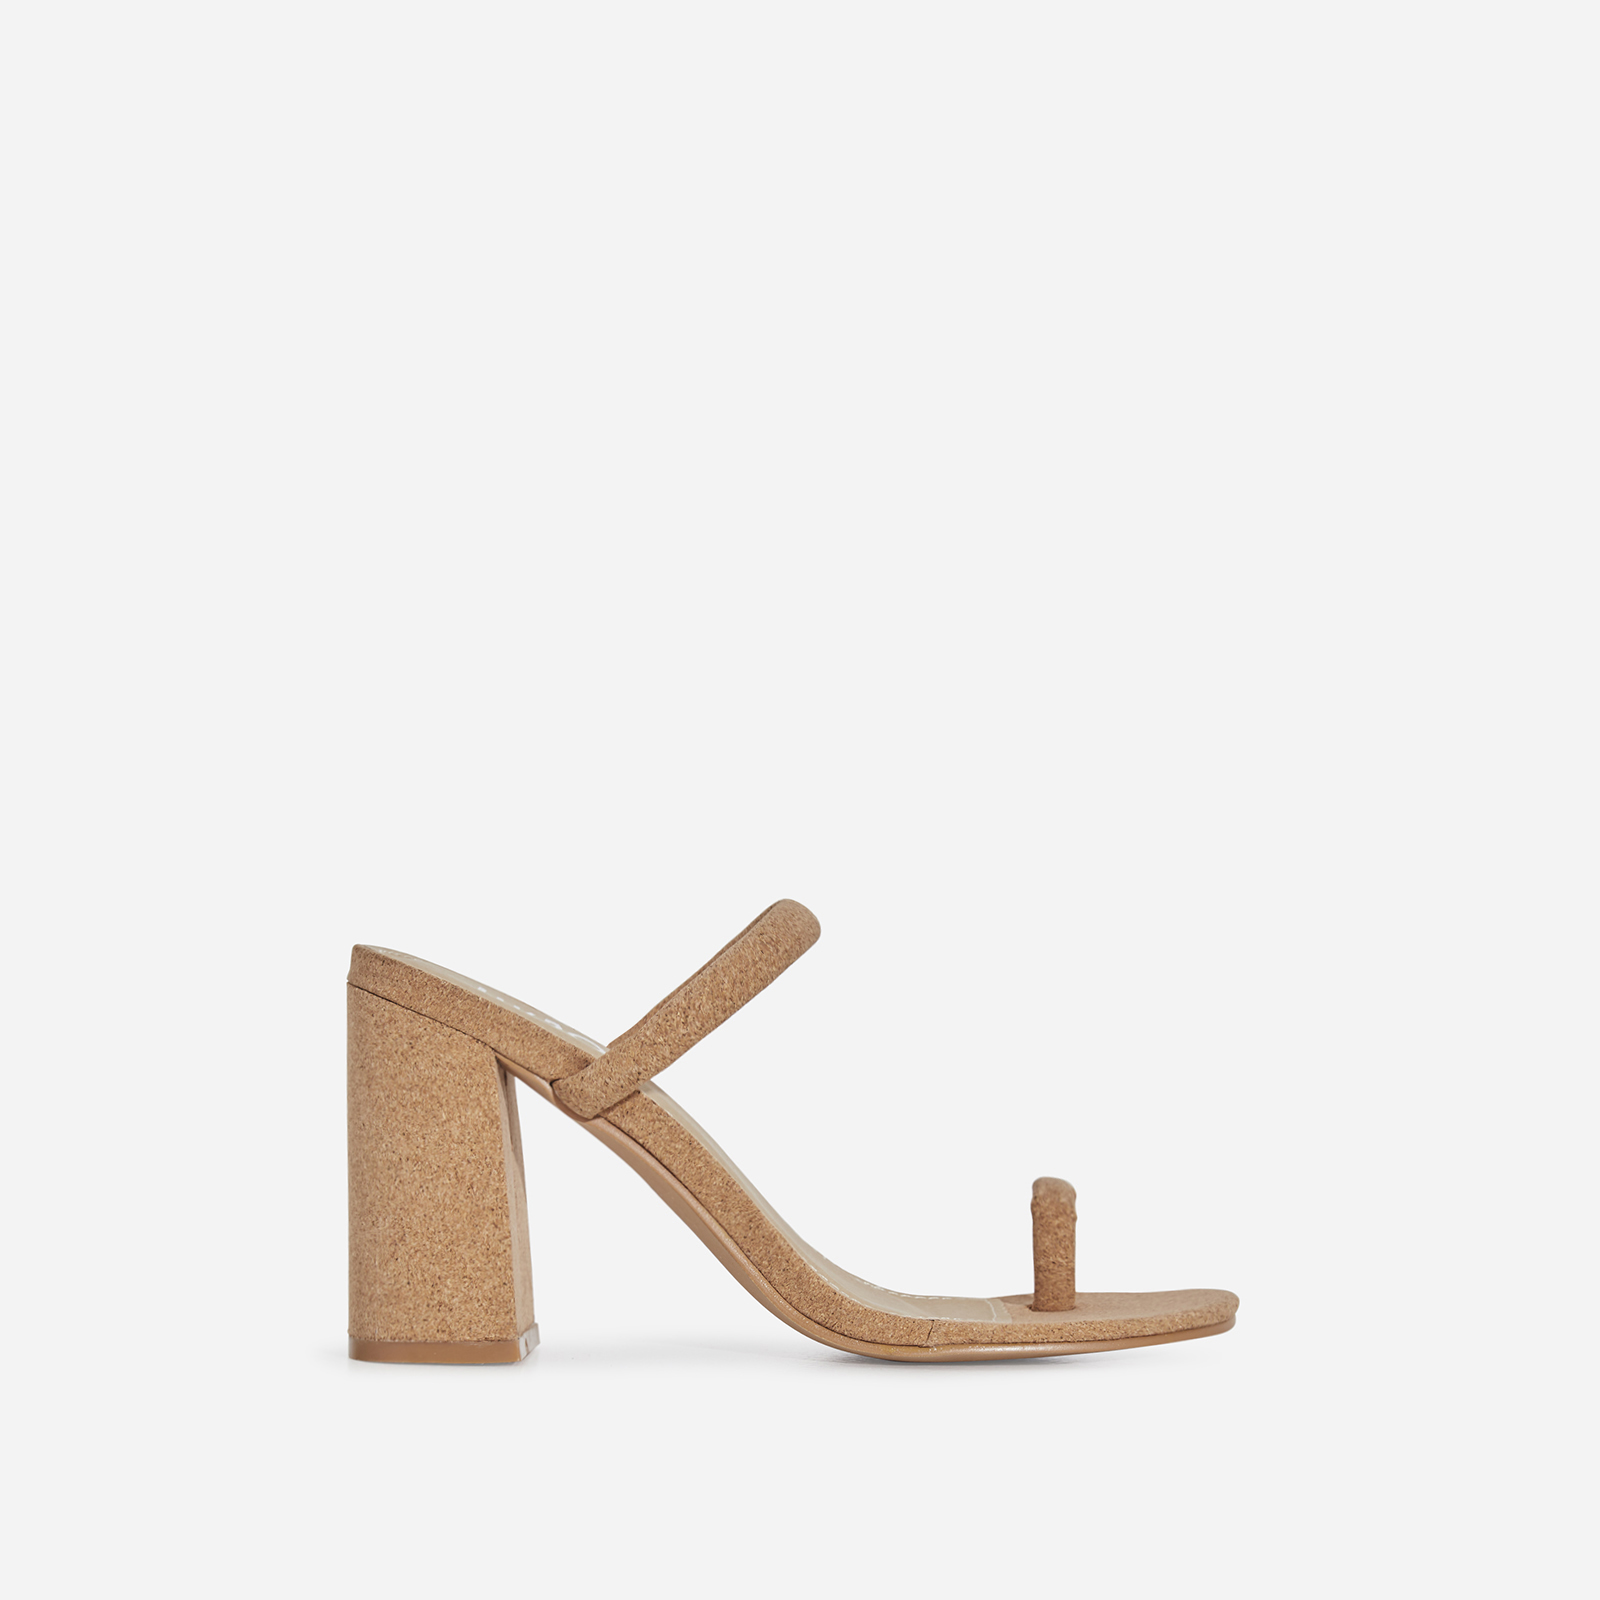 Kourt Toe Strap Black Heel Mule In Cork